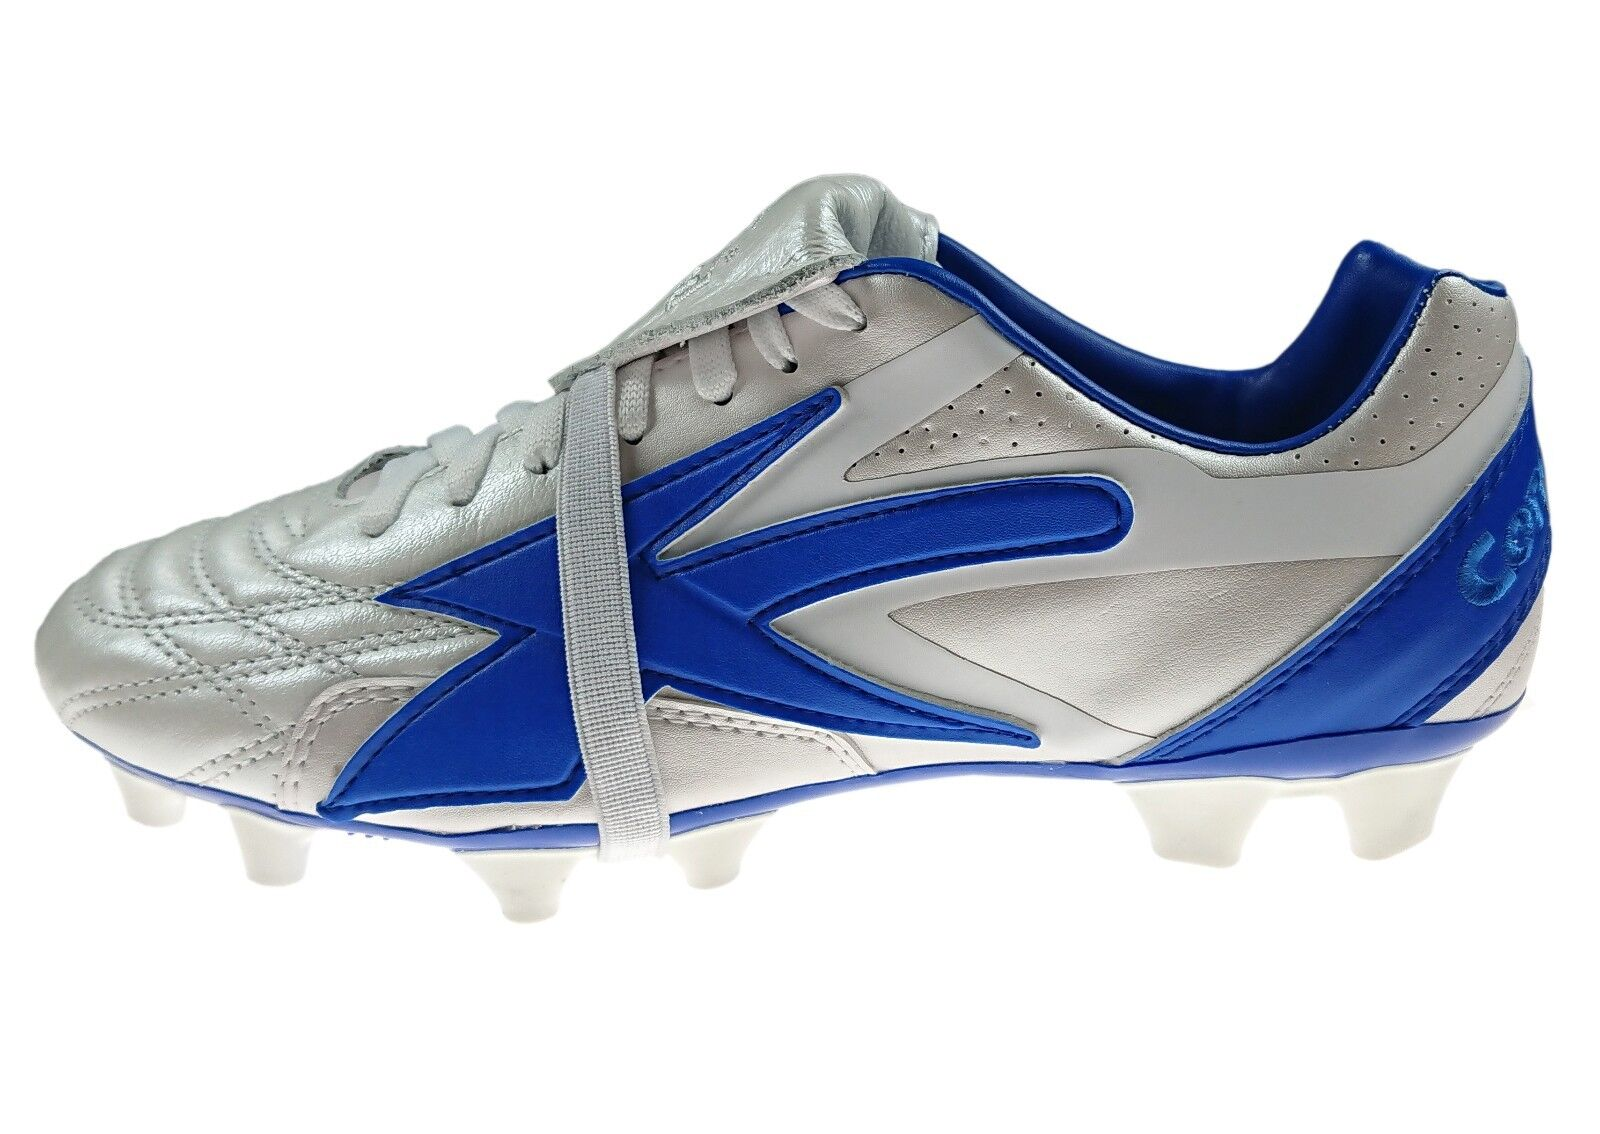 Authentic Concord Soccer Cleats Style S160XA Leather Made in Mexico